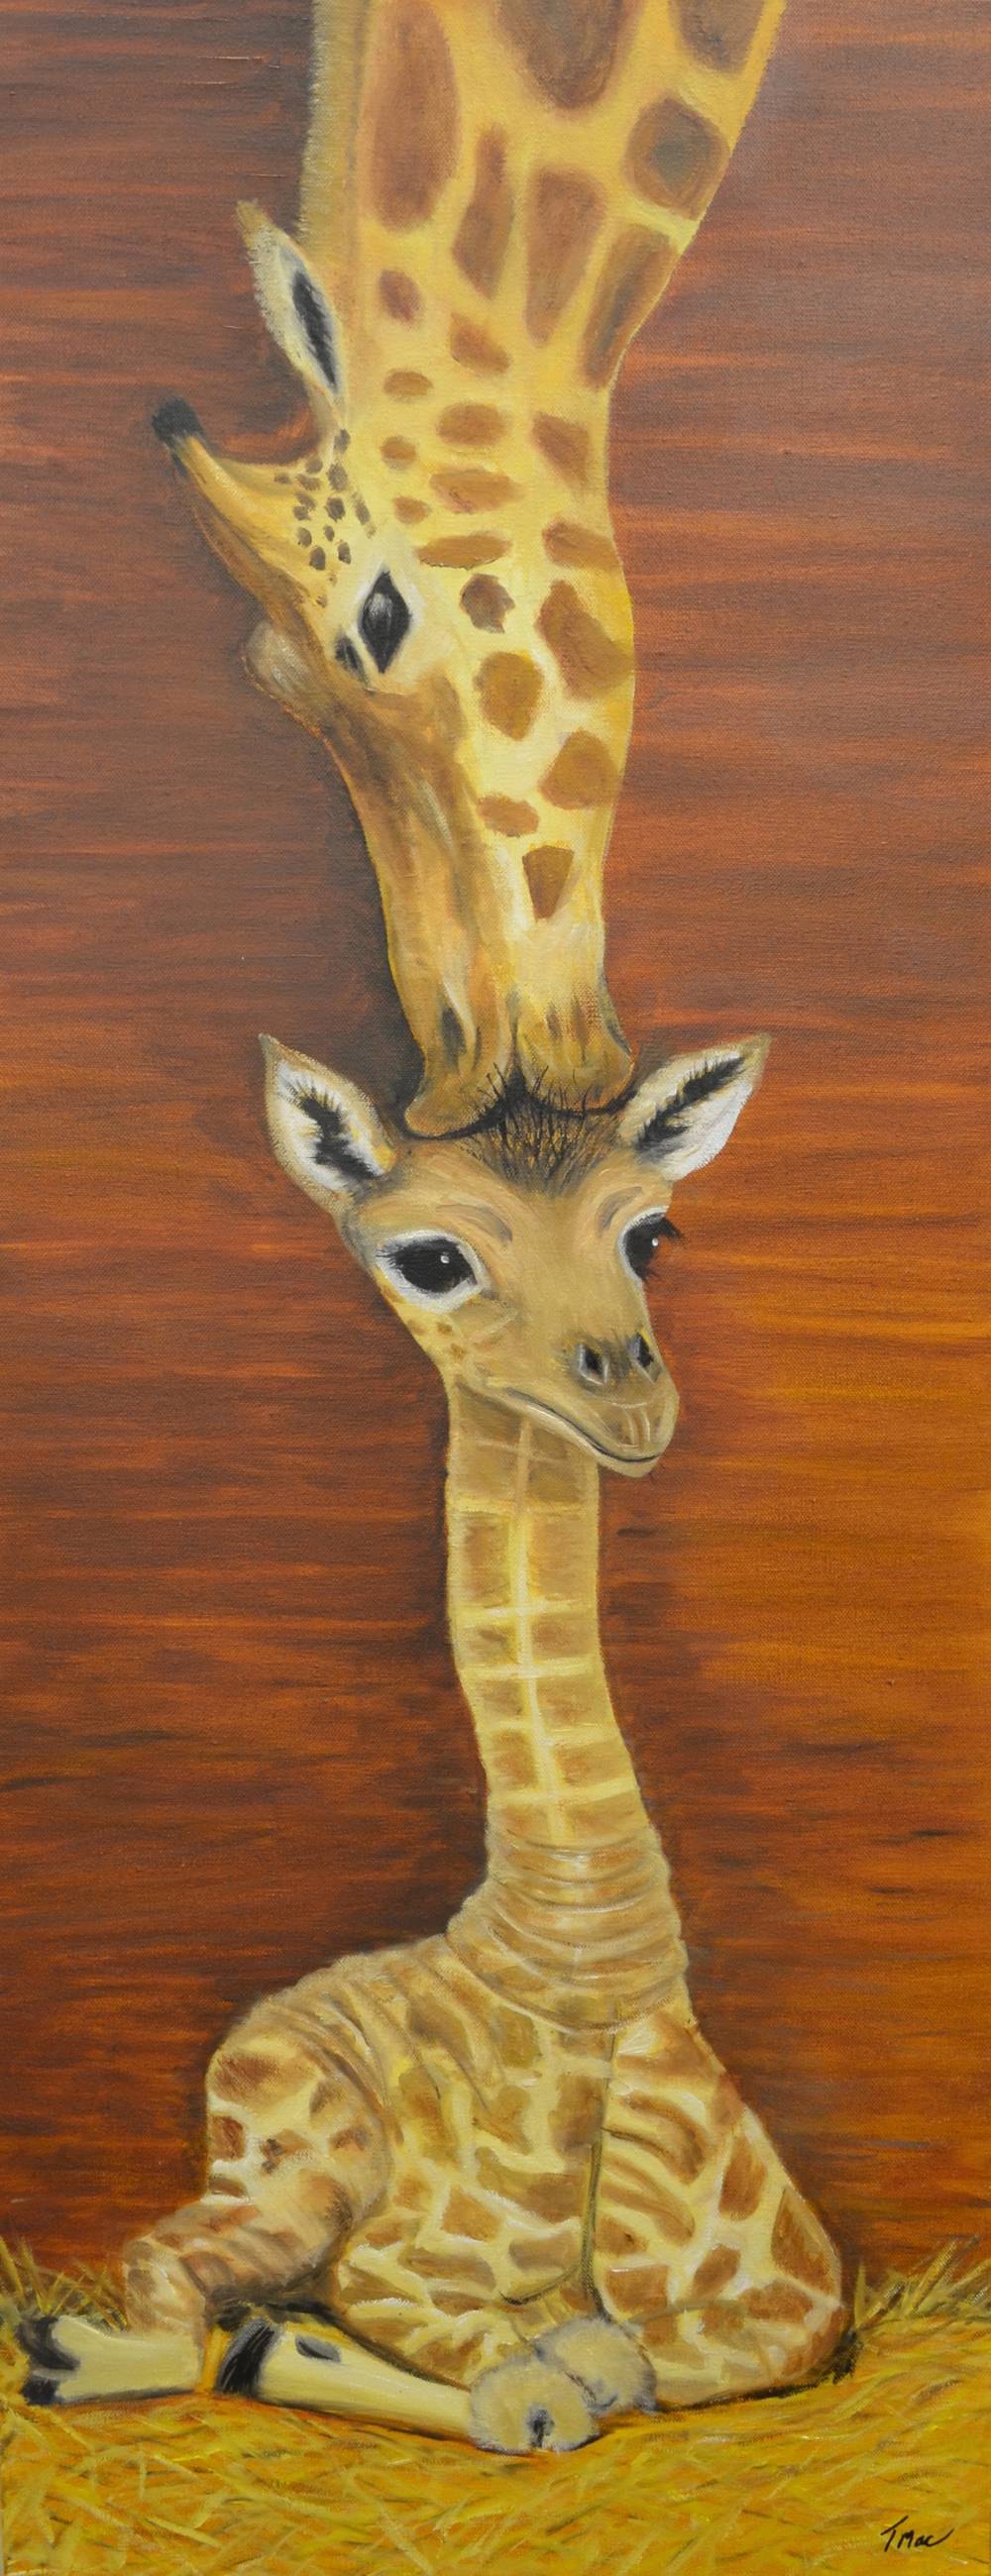 """Mommy & Me: Giraffes"" by Teresa McCarthy, 30x14in, oil on canvas (2016), $425 